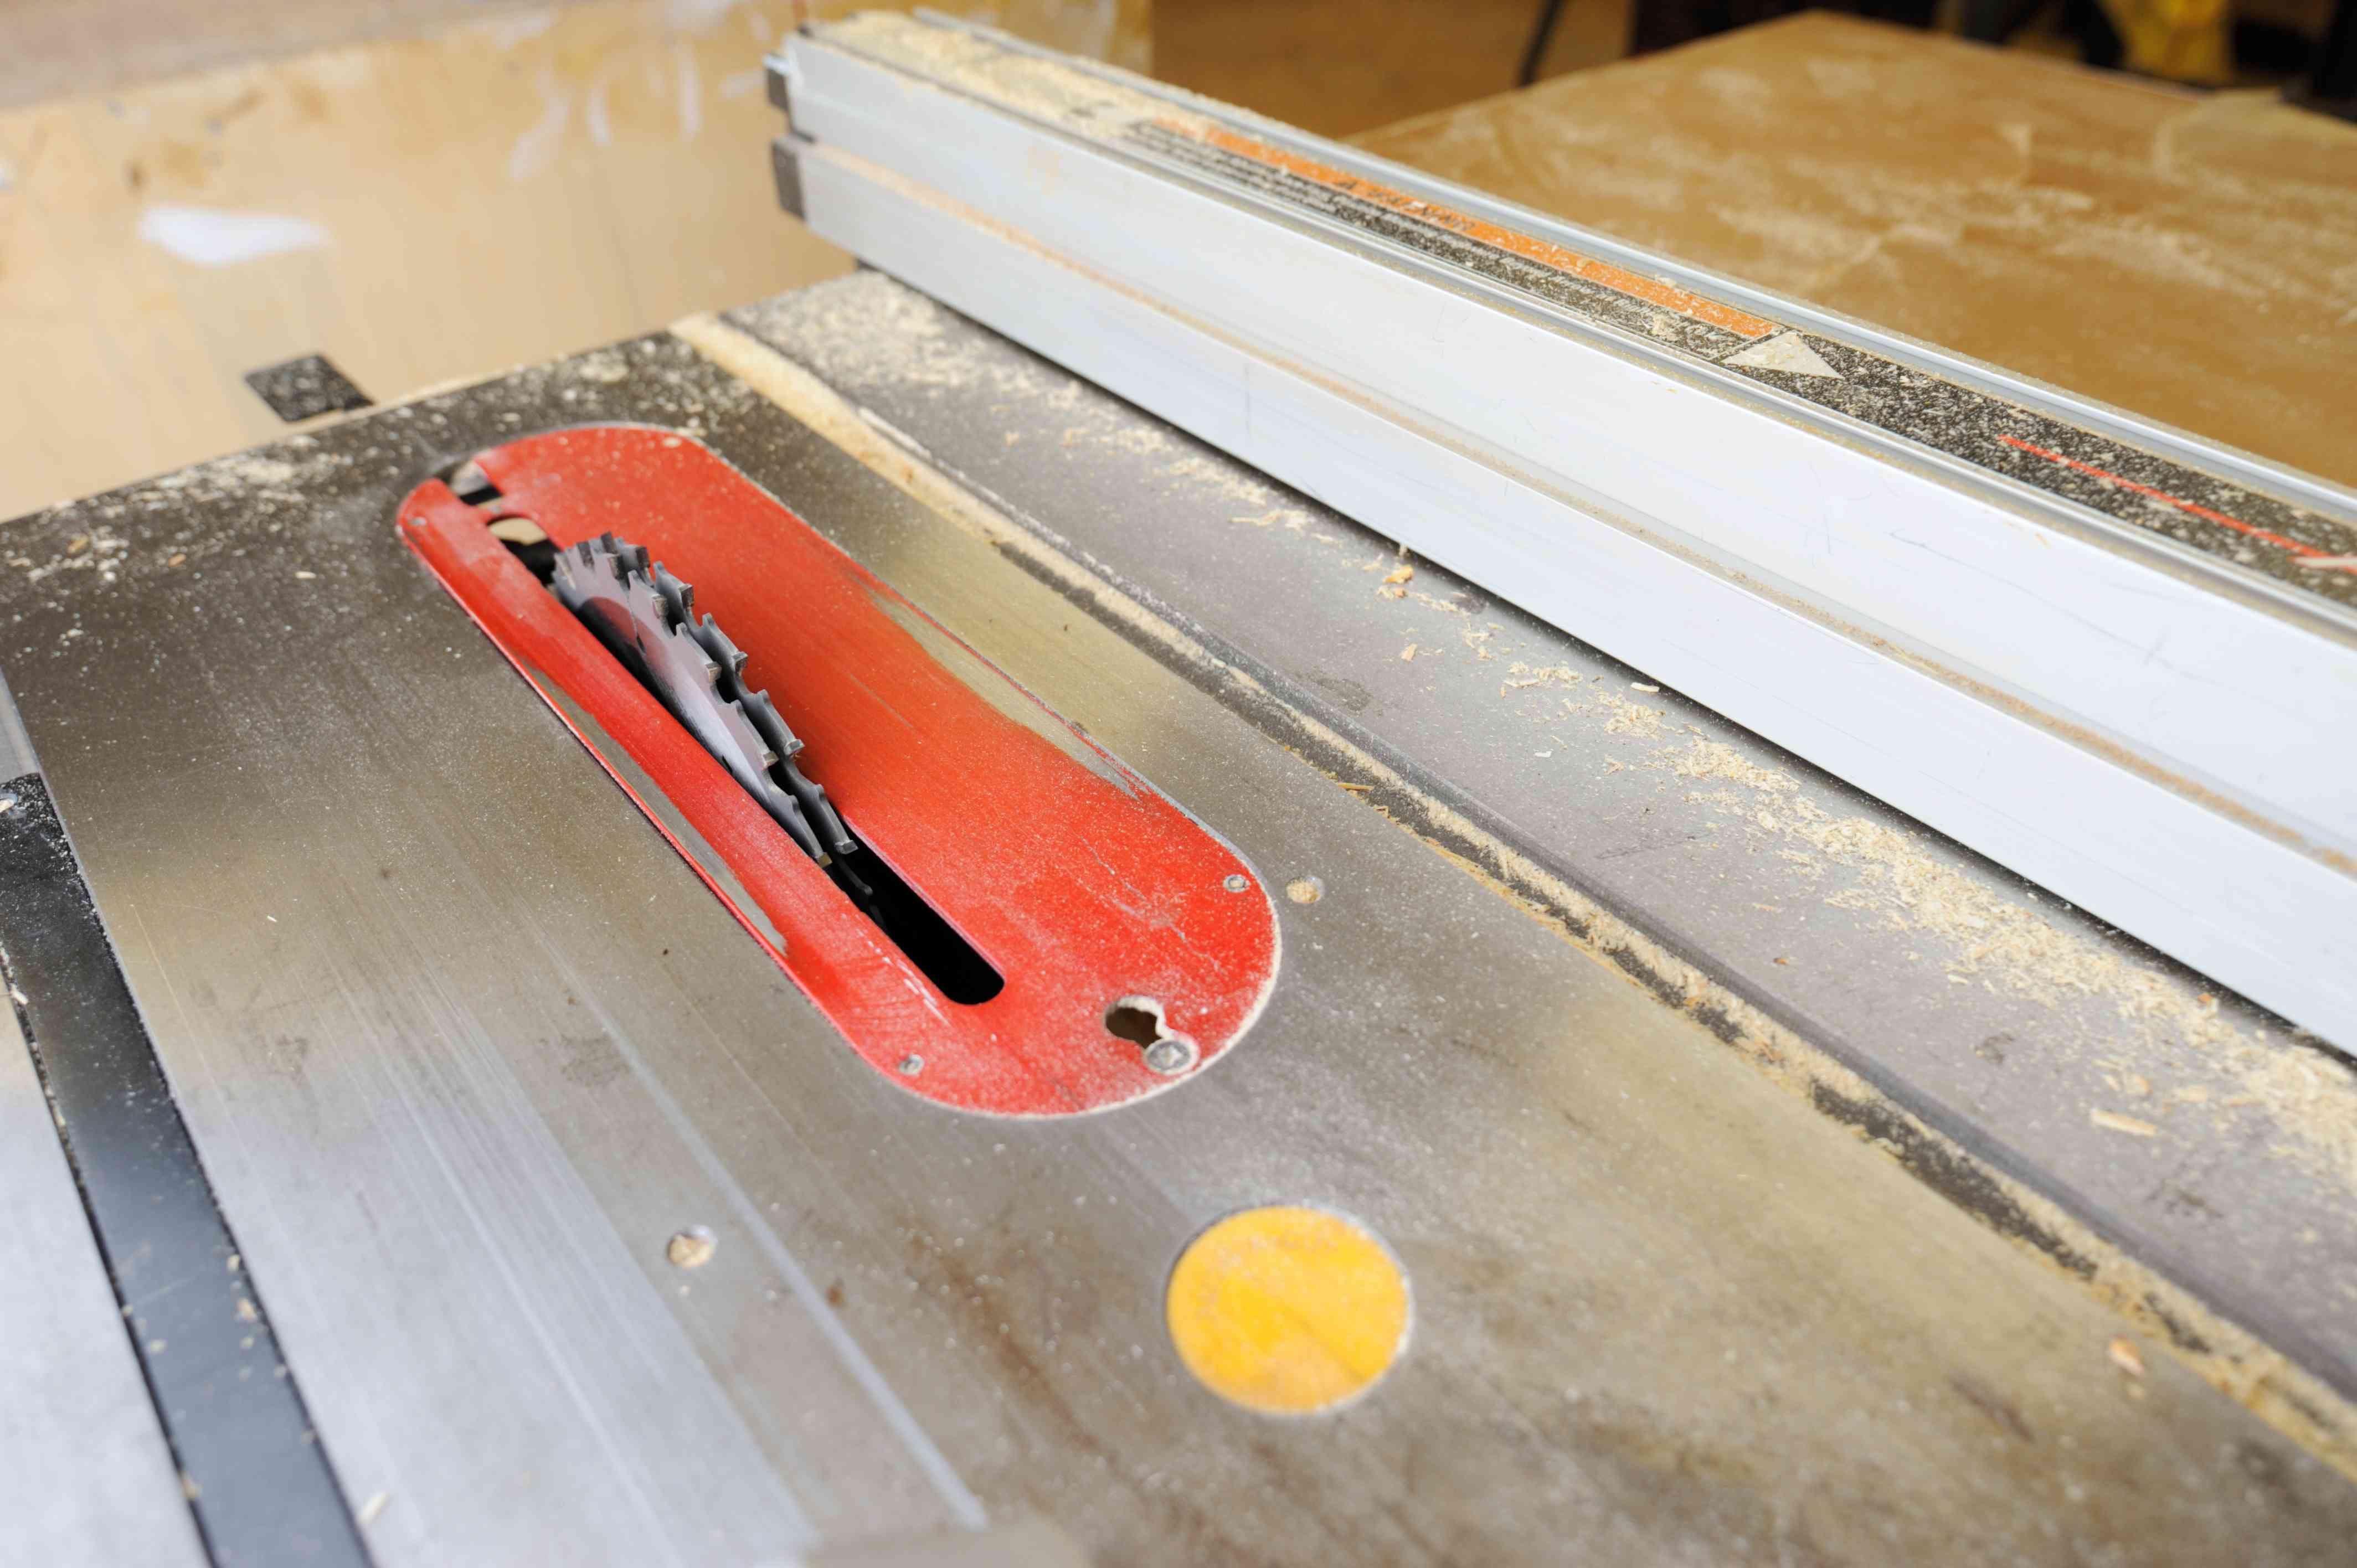 Dirty table saw with dado blade